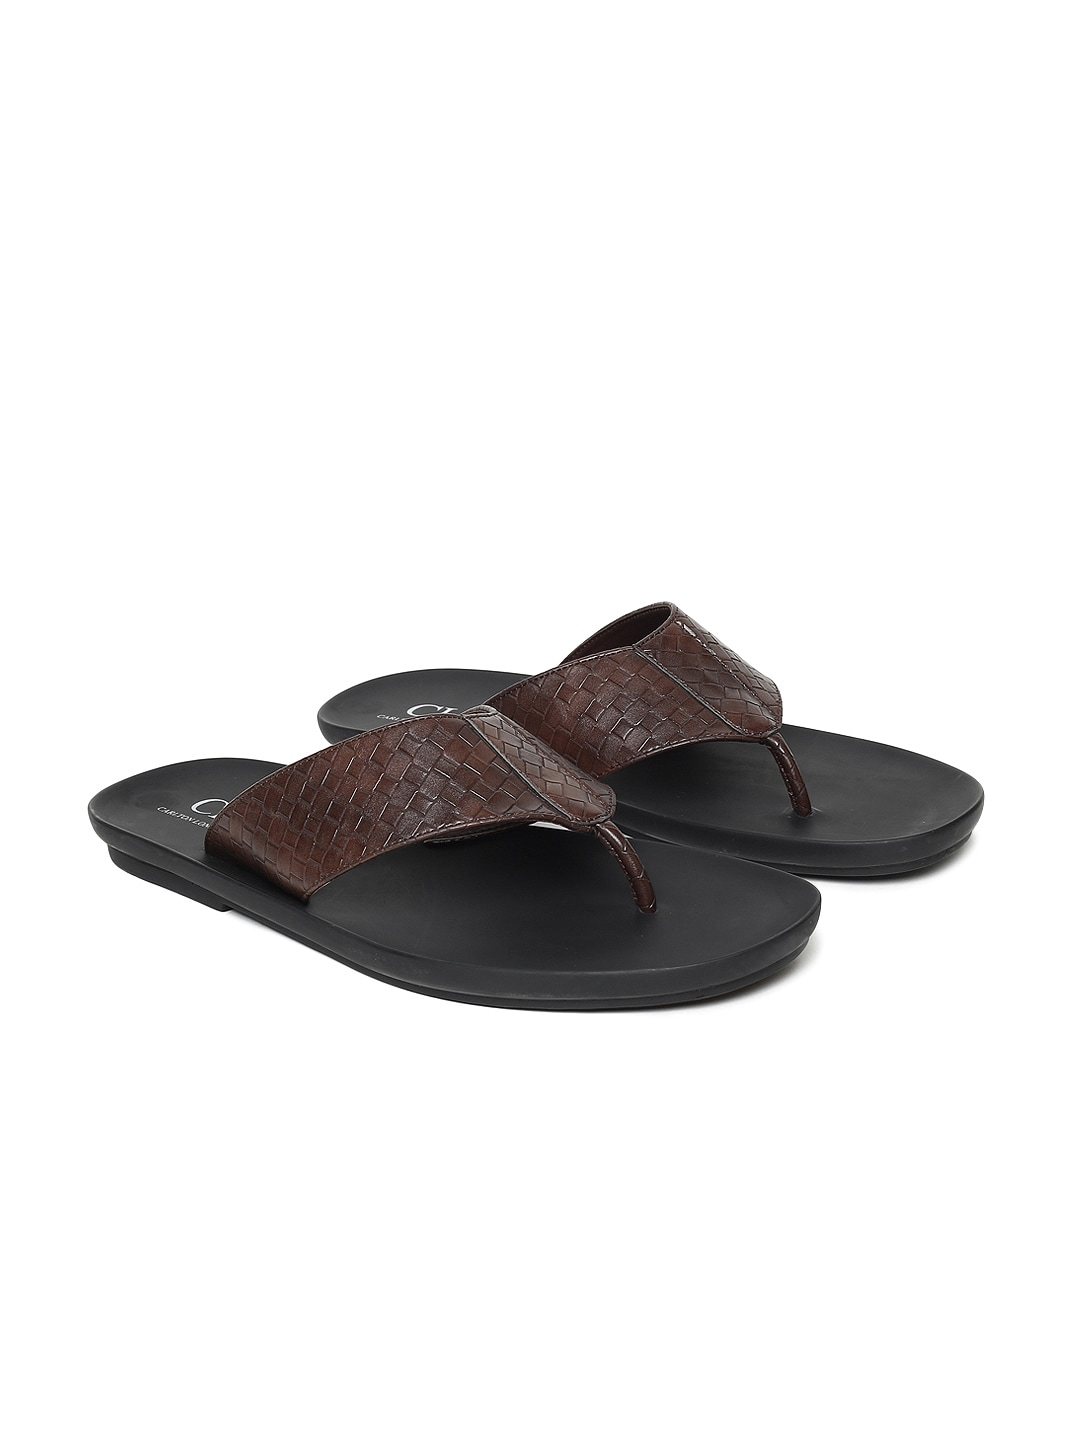 4b3147951 Sandals For Men - Buy Men Sandals Online in India